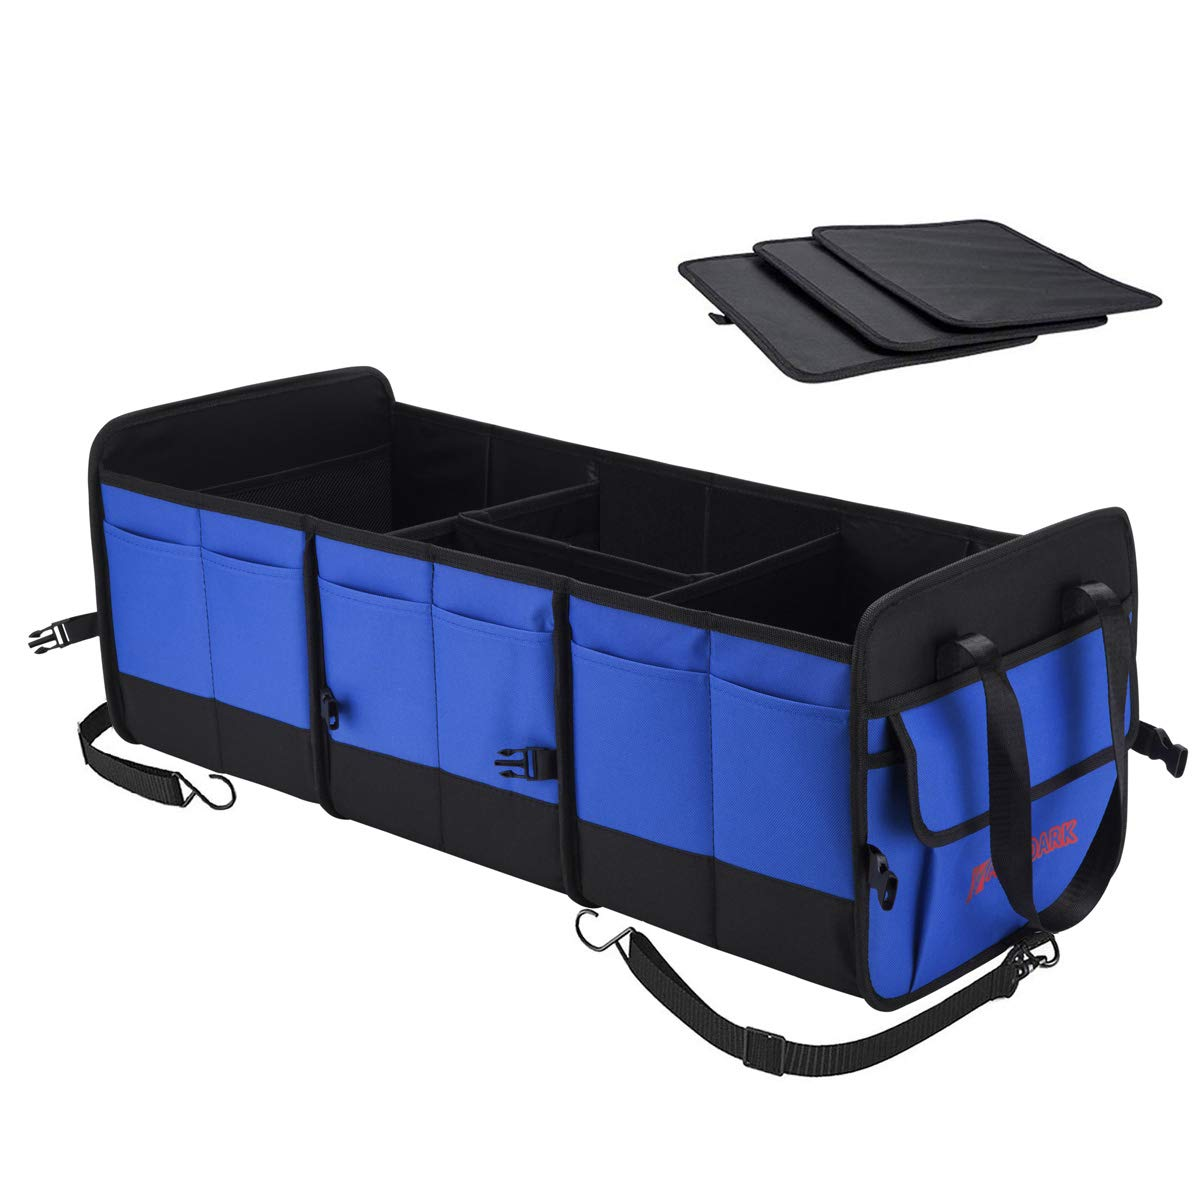 Autoark Multipurpose Car SUV Trunk Organizer,Durable Collapsible Adjustable Compartments Cargo Storage,AK-076